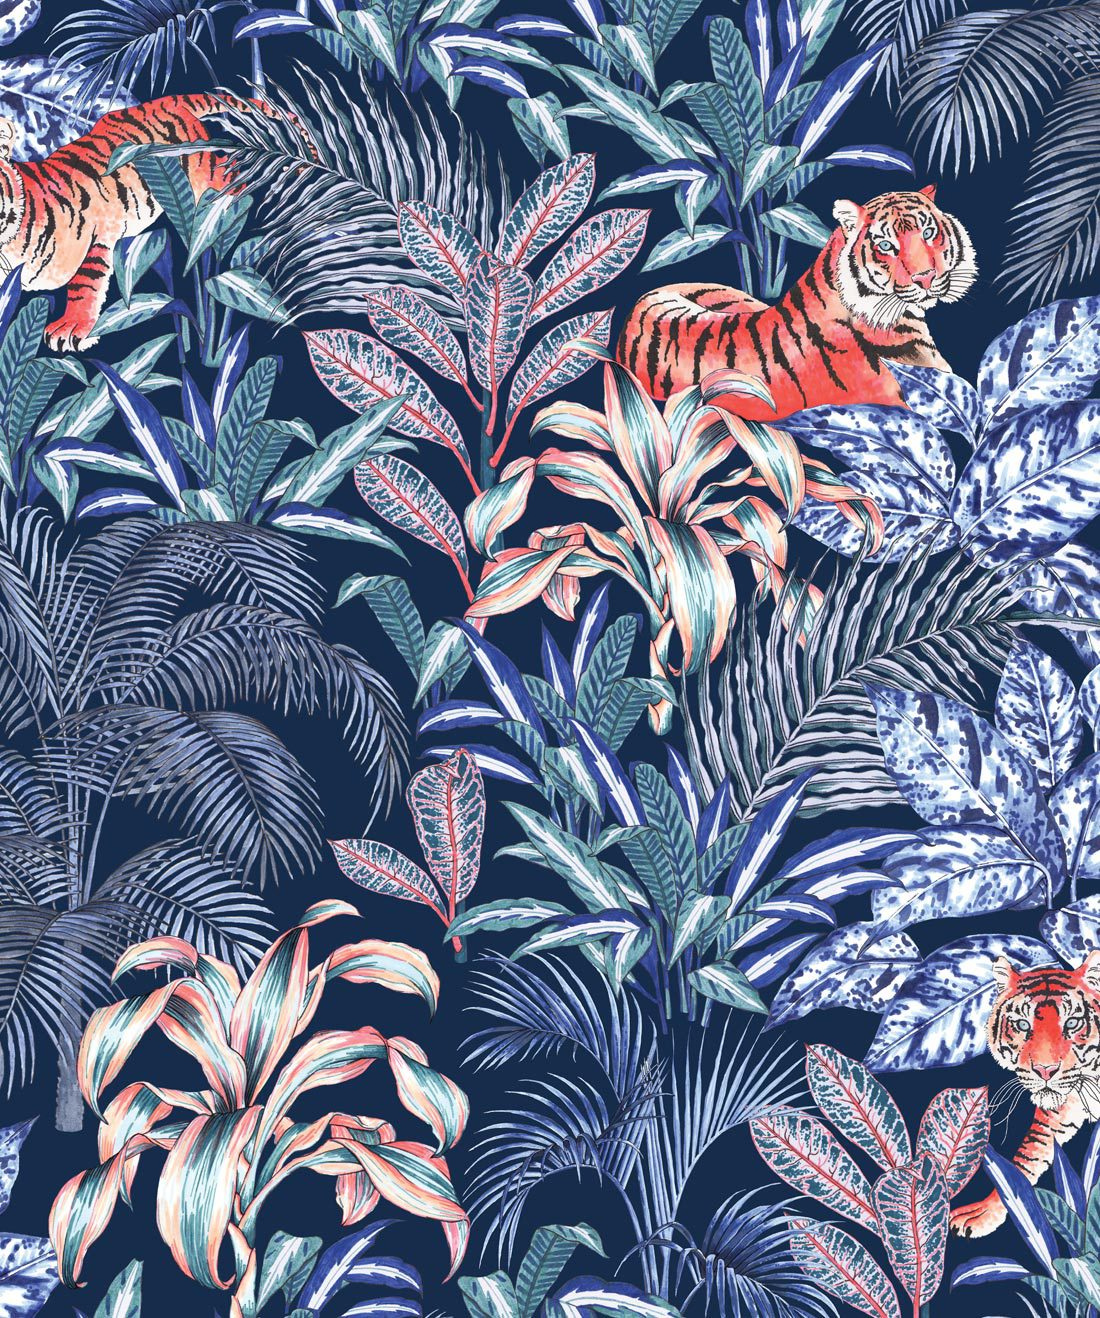 Jungle Tiger Wallpaper Opulent Jungle Design Milton King